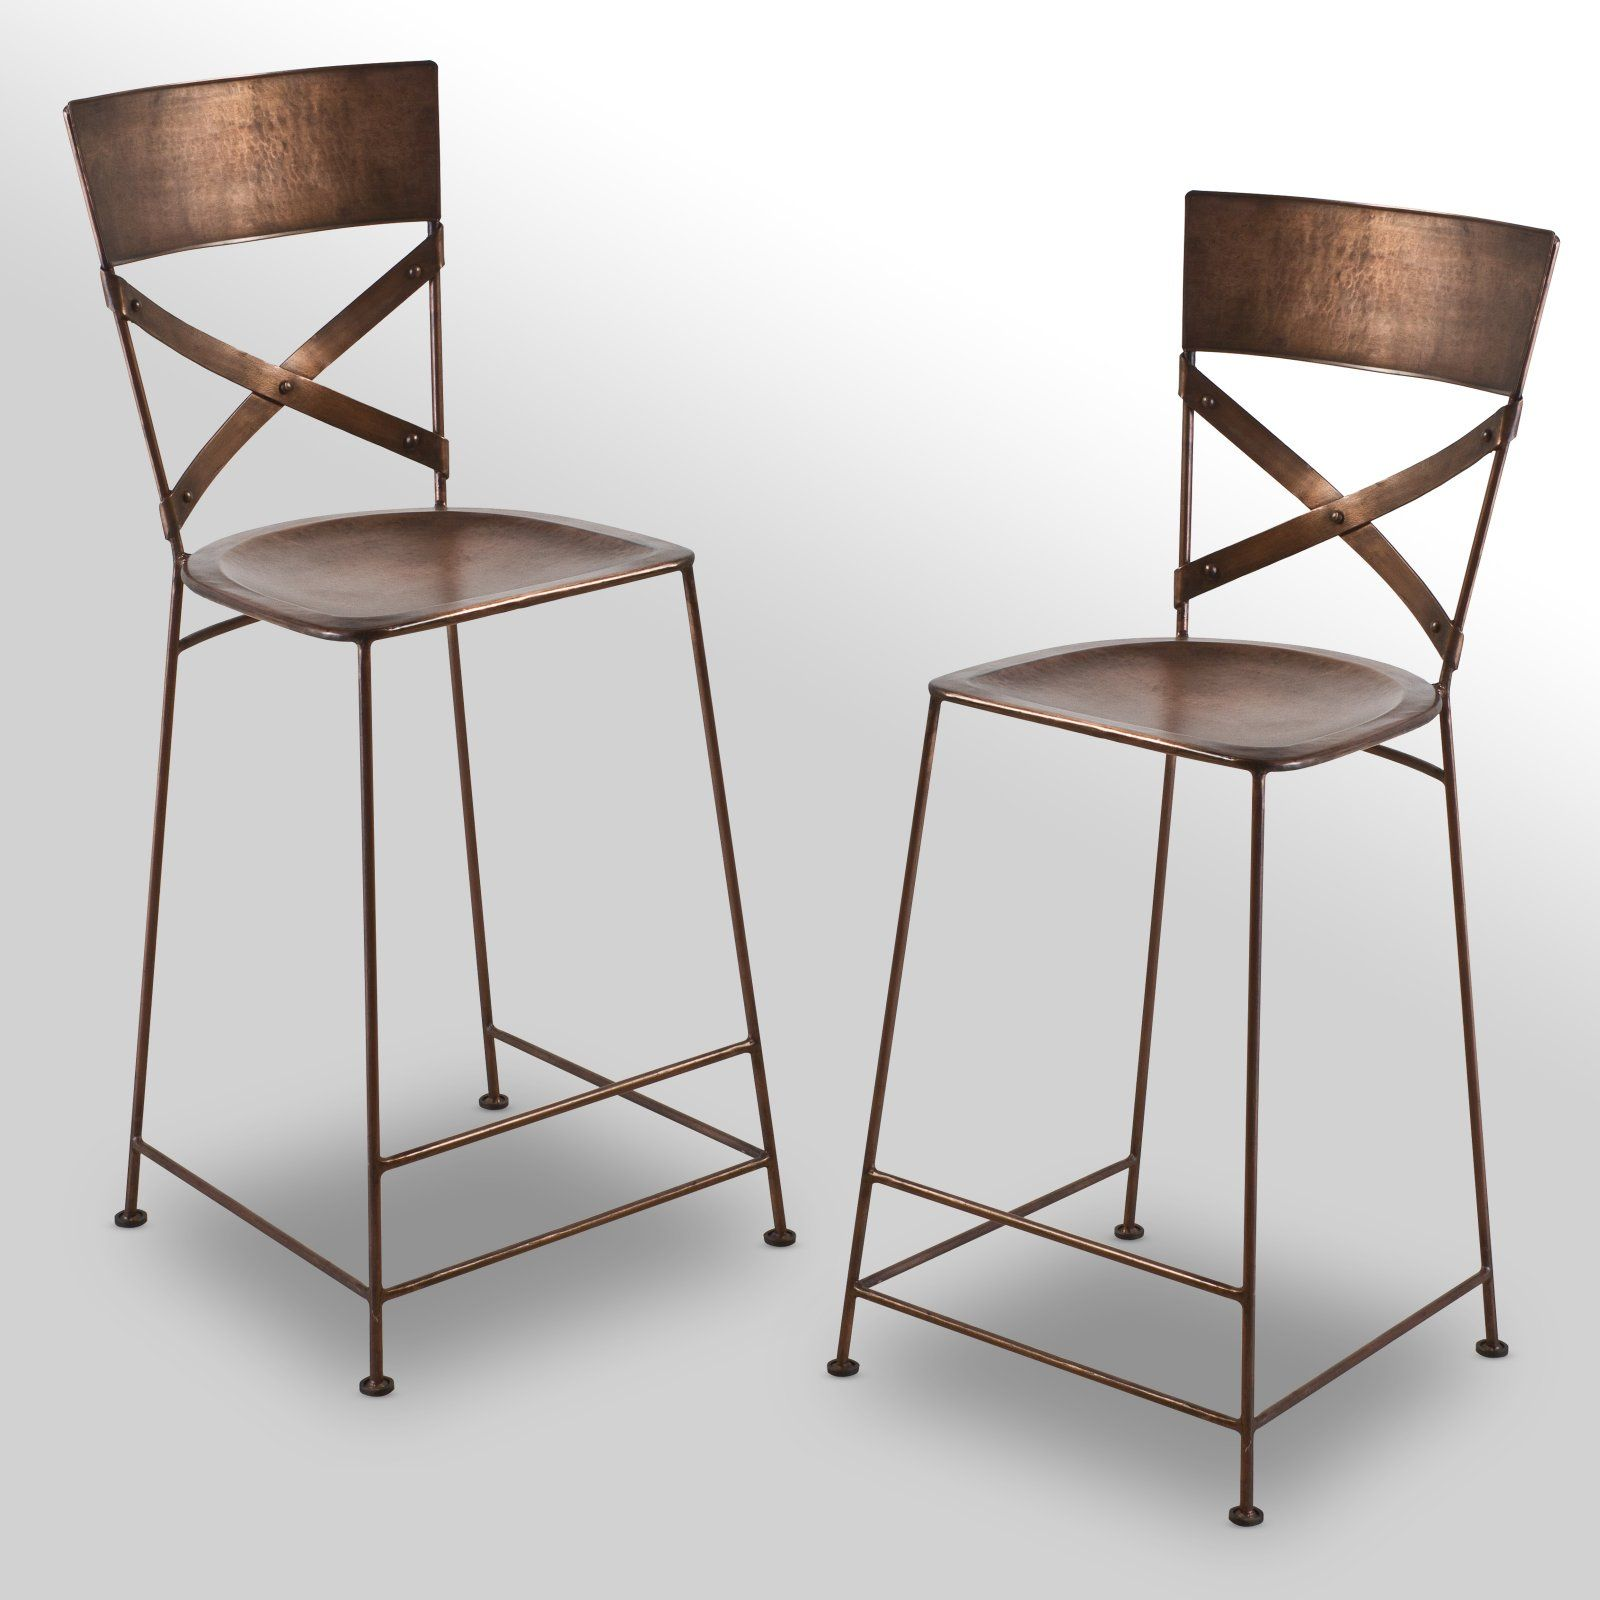 The Foundary - Jabalpur Copper Counter Stools